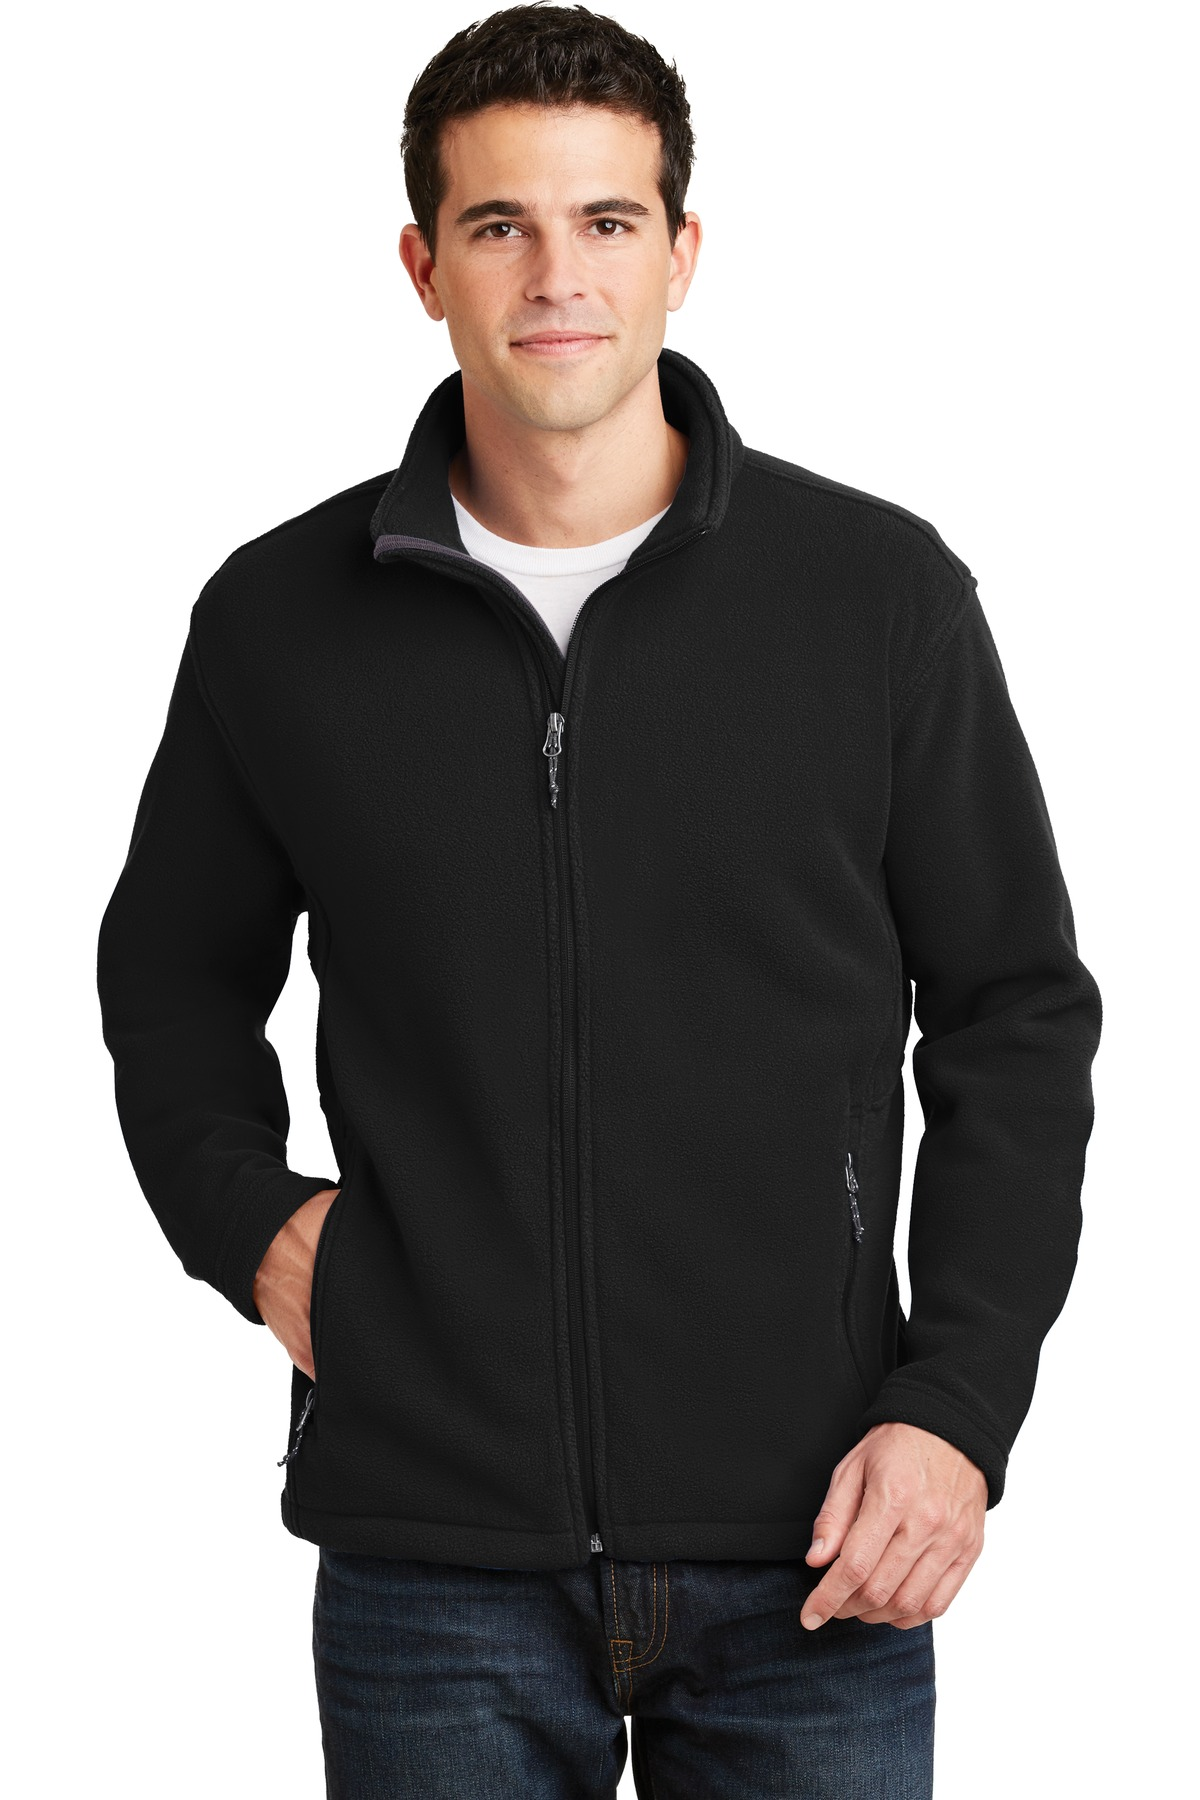 Port Authority ®  Value Fleece Jacket. F217 - Black